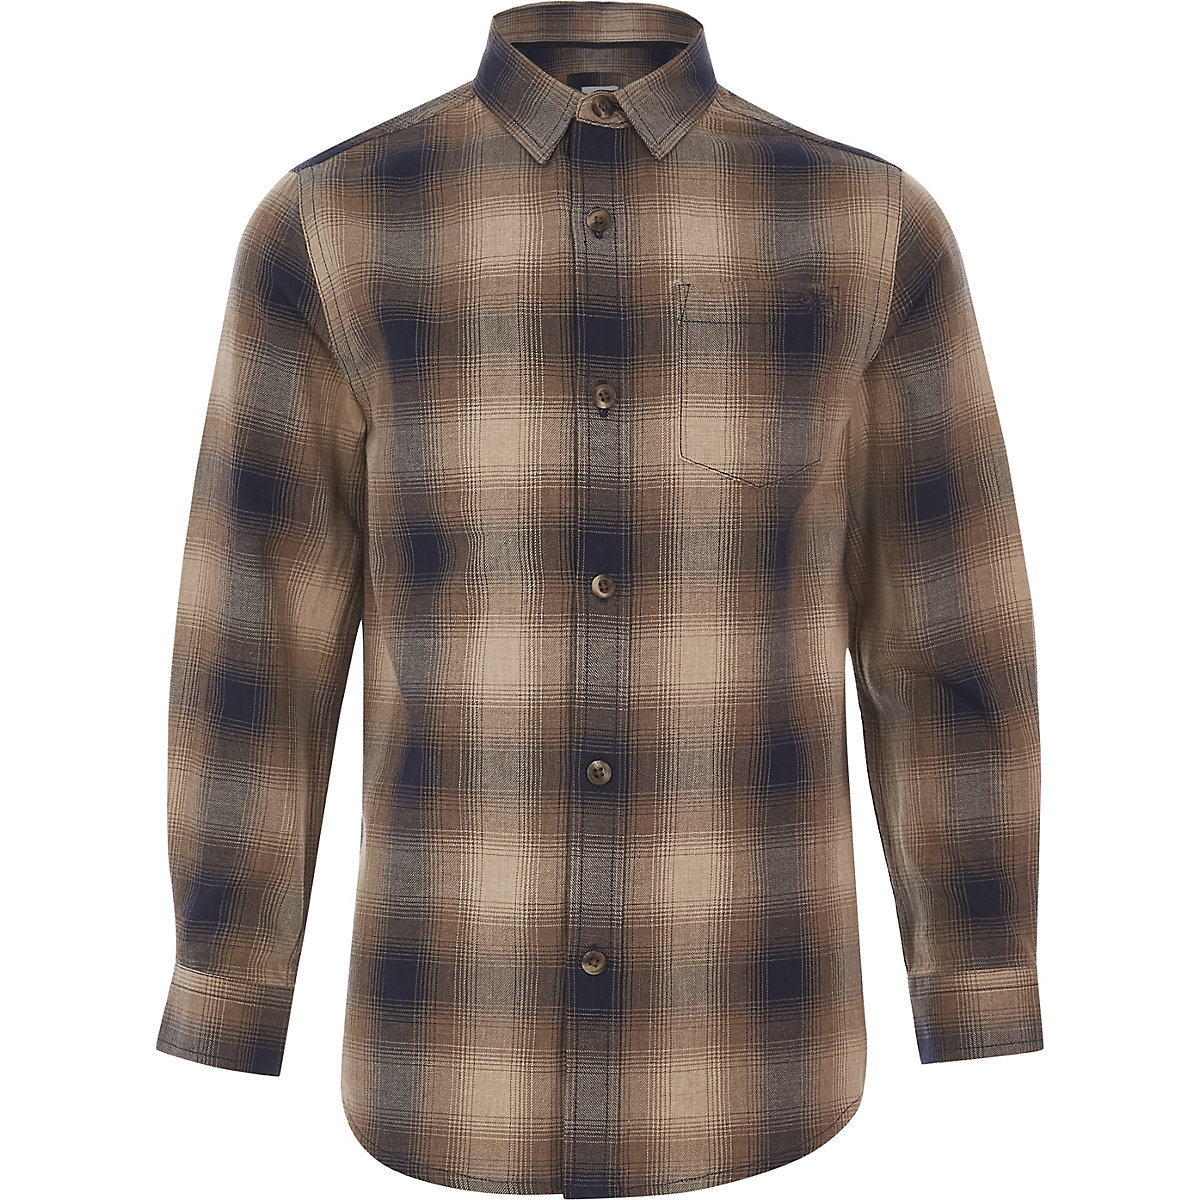 Boys brown ombre check shirt